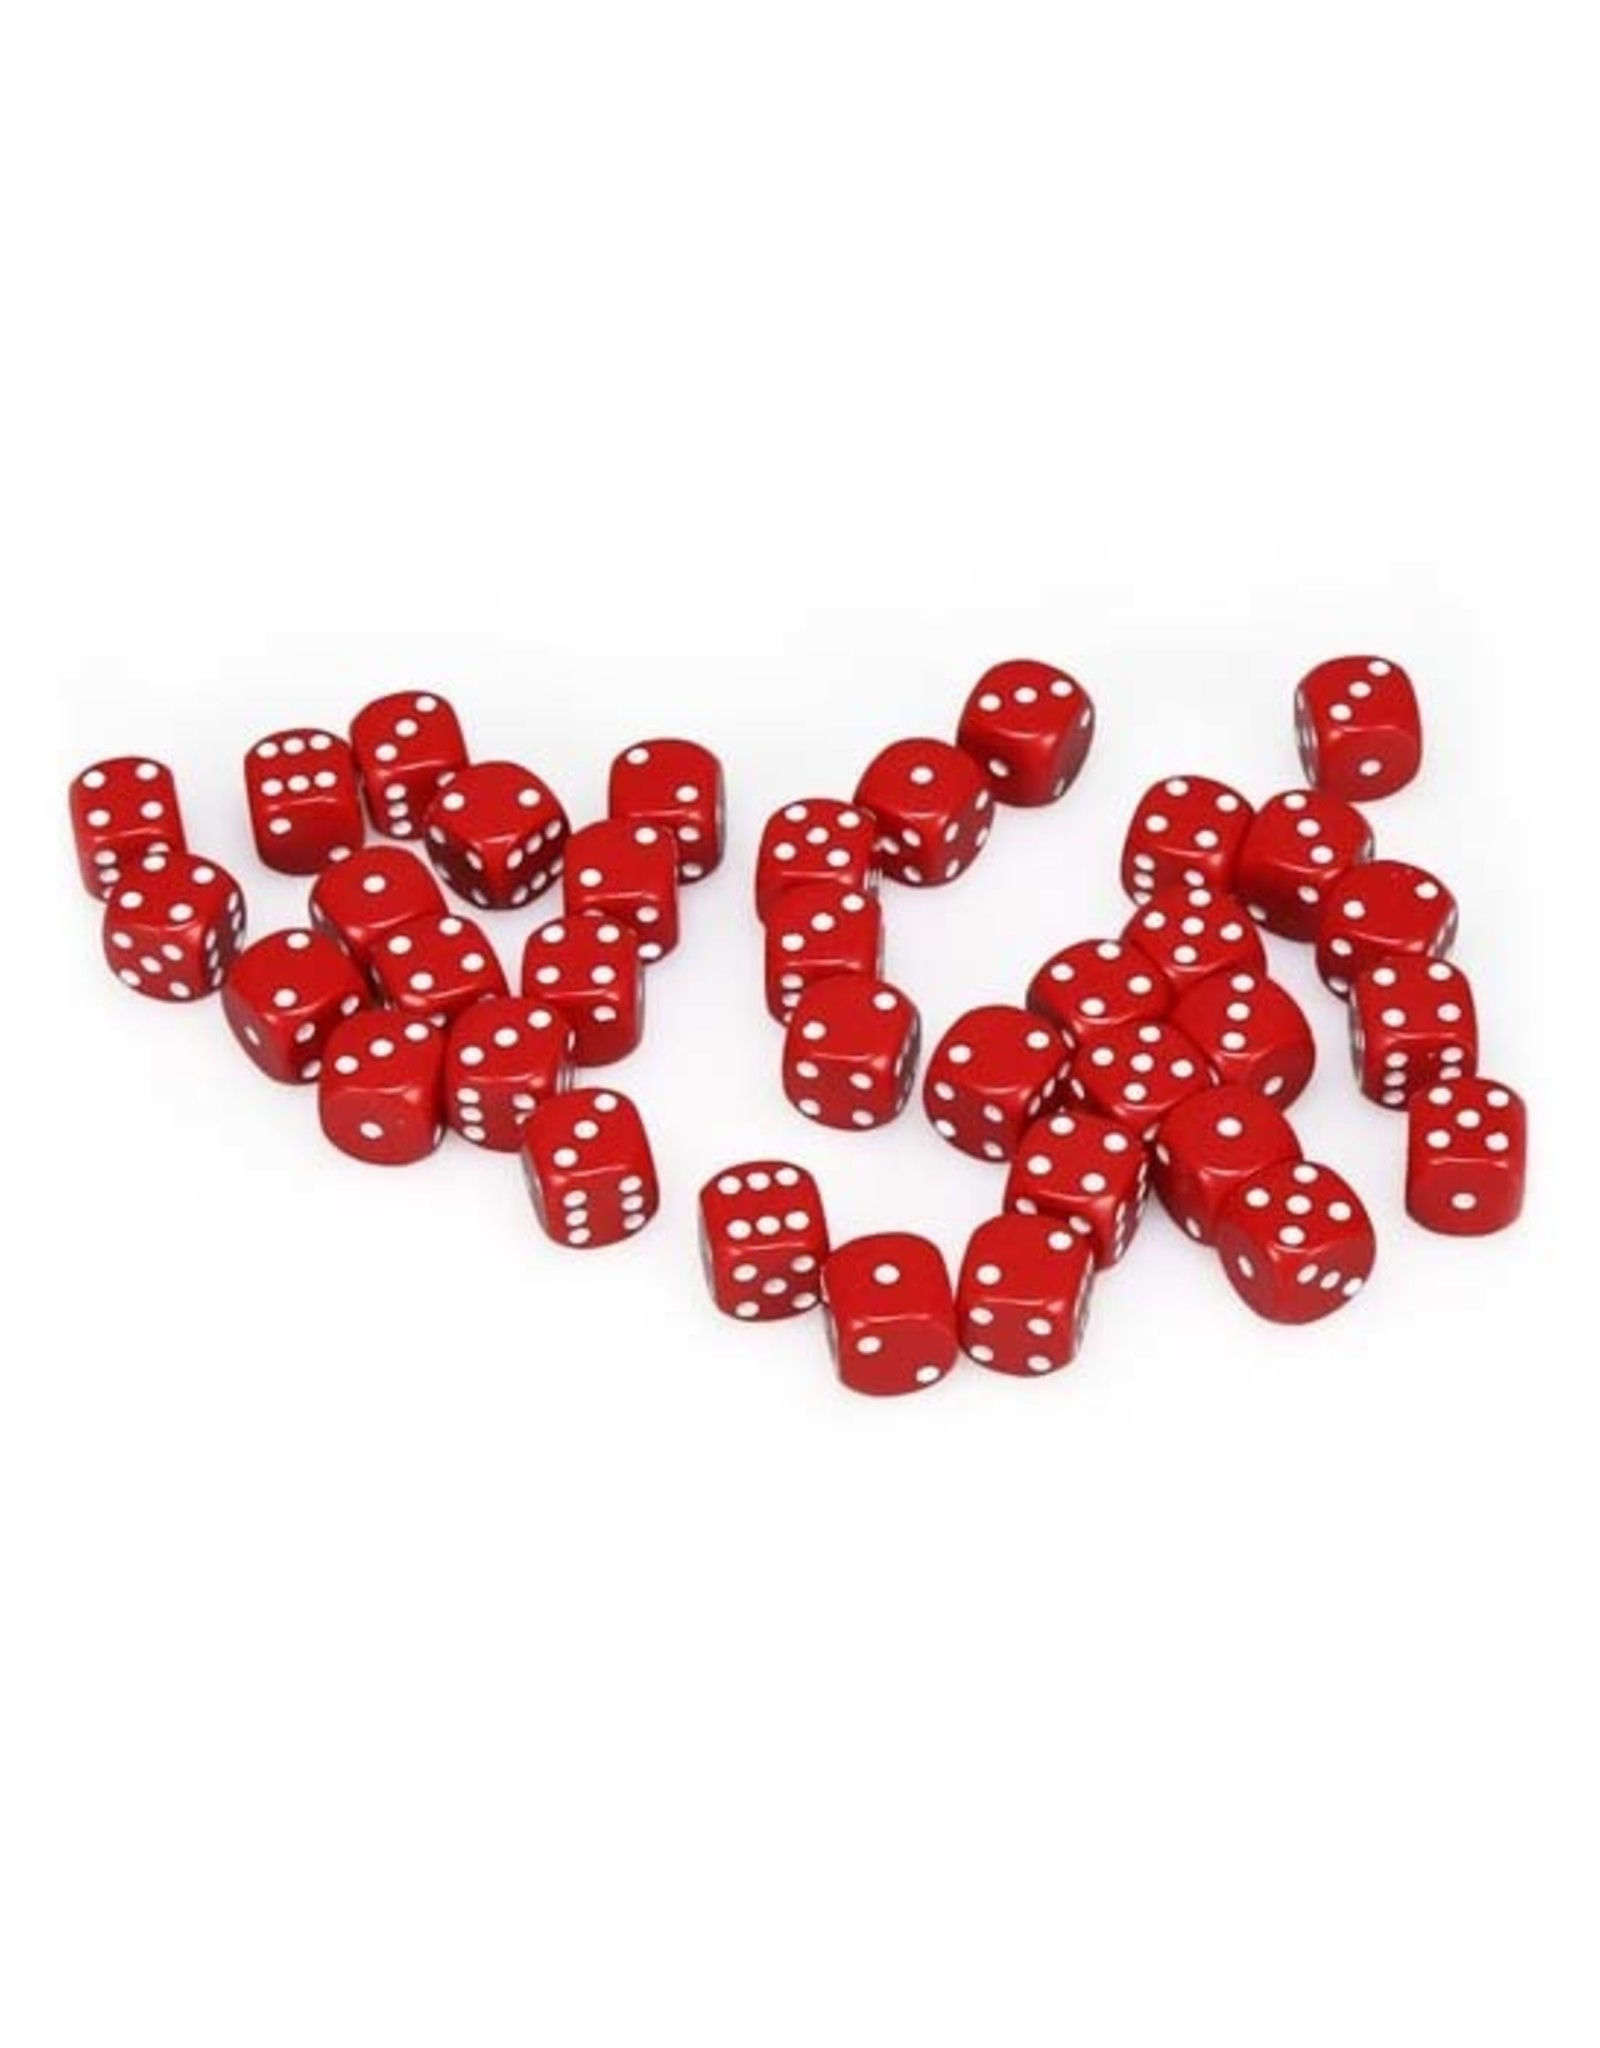 Chessex Chessex: 12mm D6 - Opaque - Red w/ White